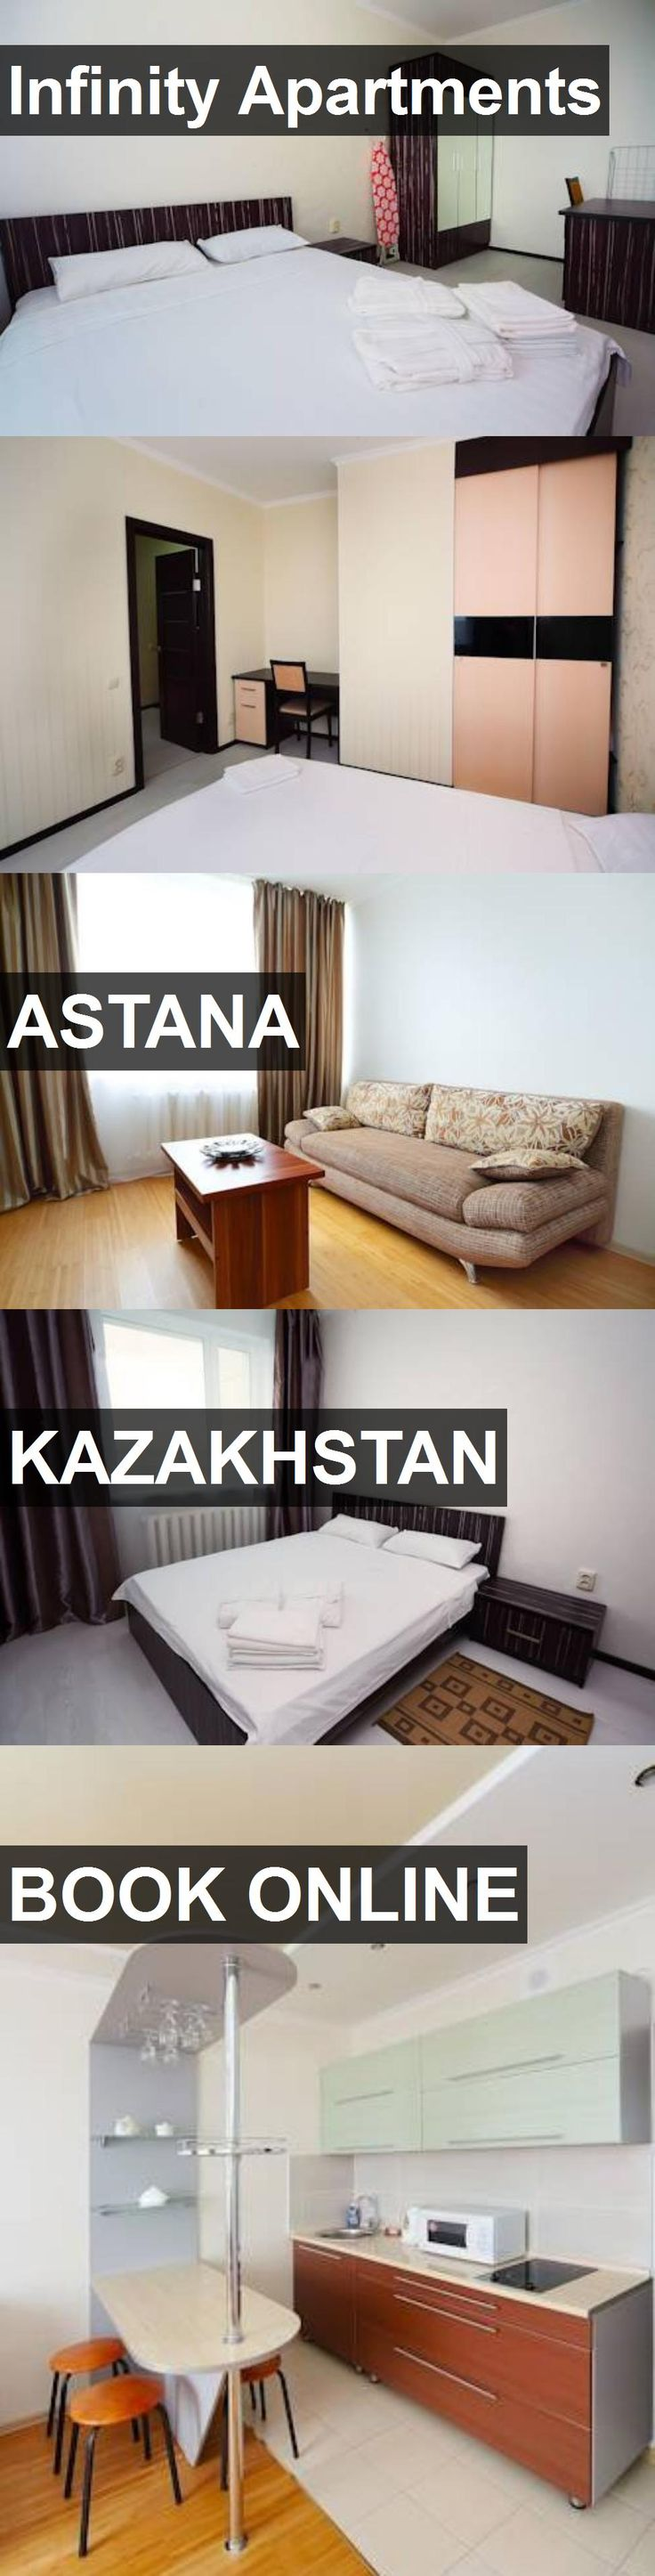 Hotel Infinity Apartments in Astana, Kazakhstan. For more information, photos, reviews and best prices please follow the link. #Kazakhstan #Astana #InfinityApartments #hotel #travel #vacation